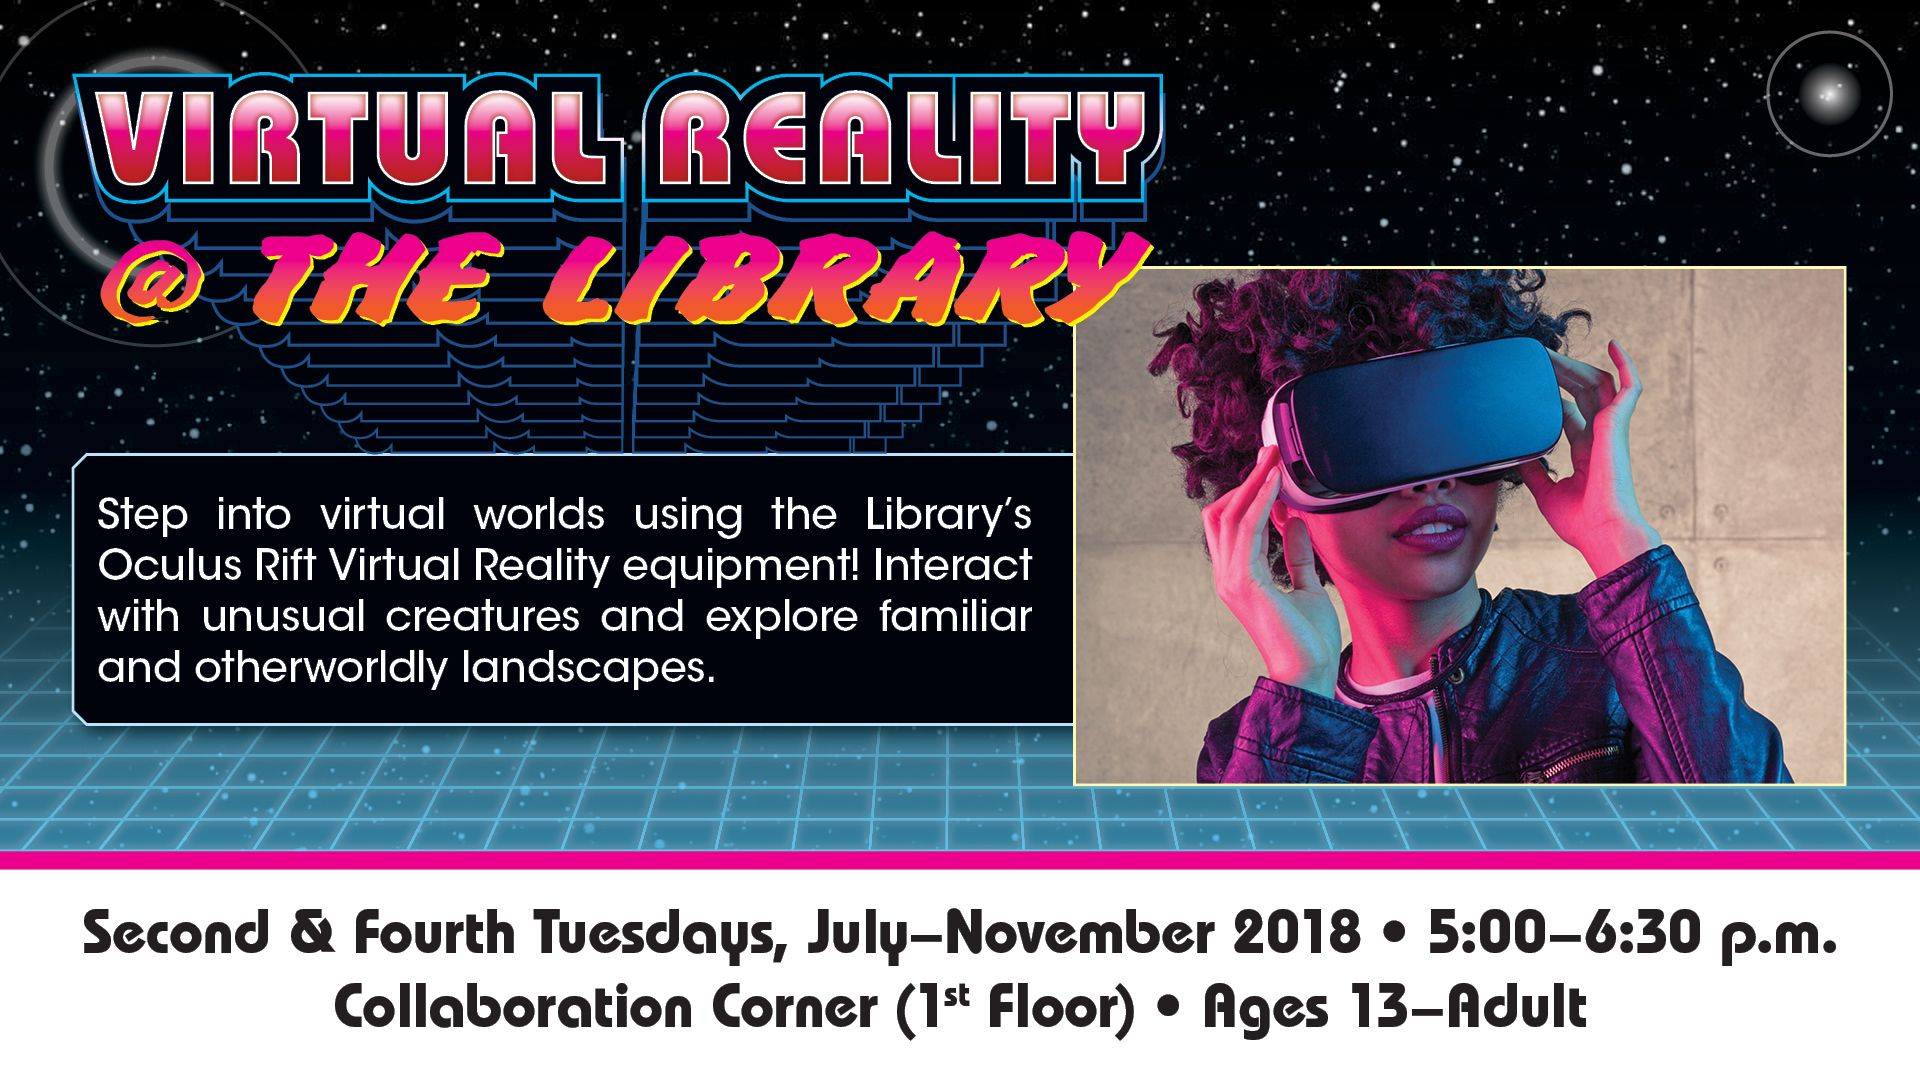 Step into virtual worlds using the Library's new Oculus Rift Virtual